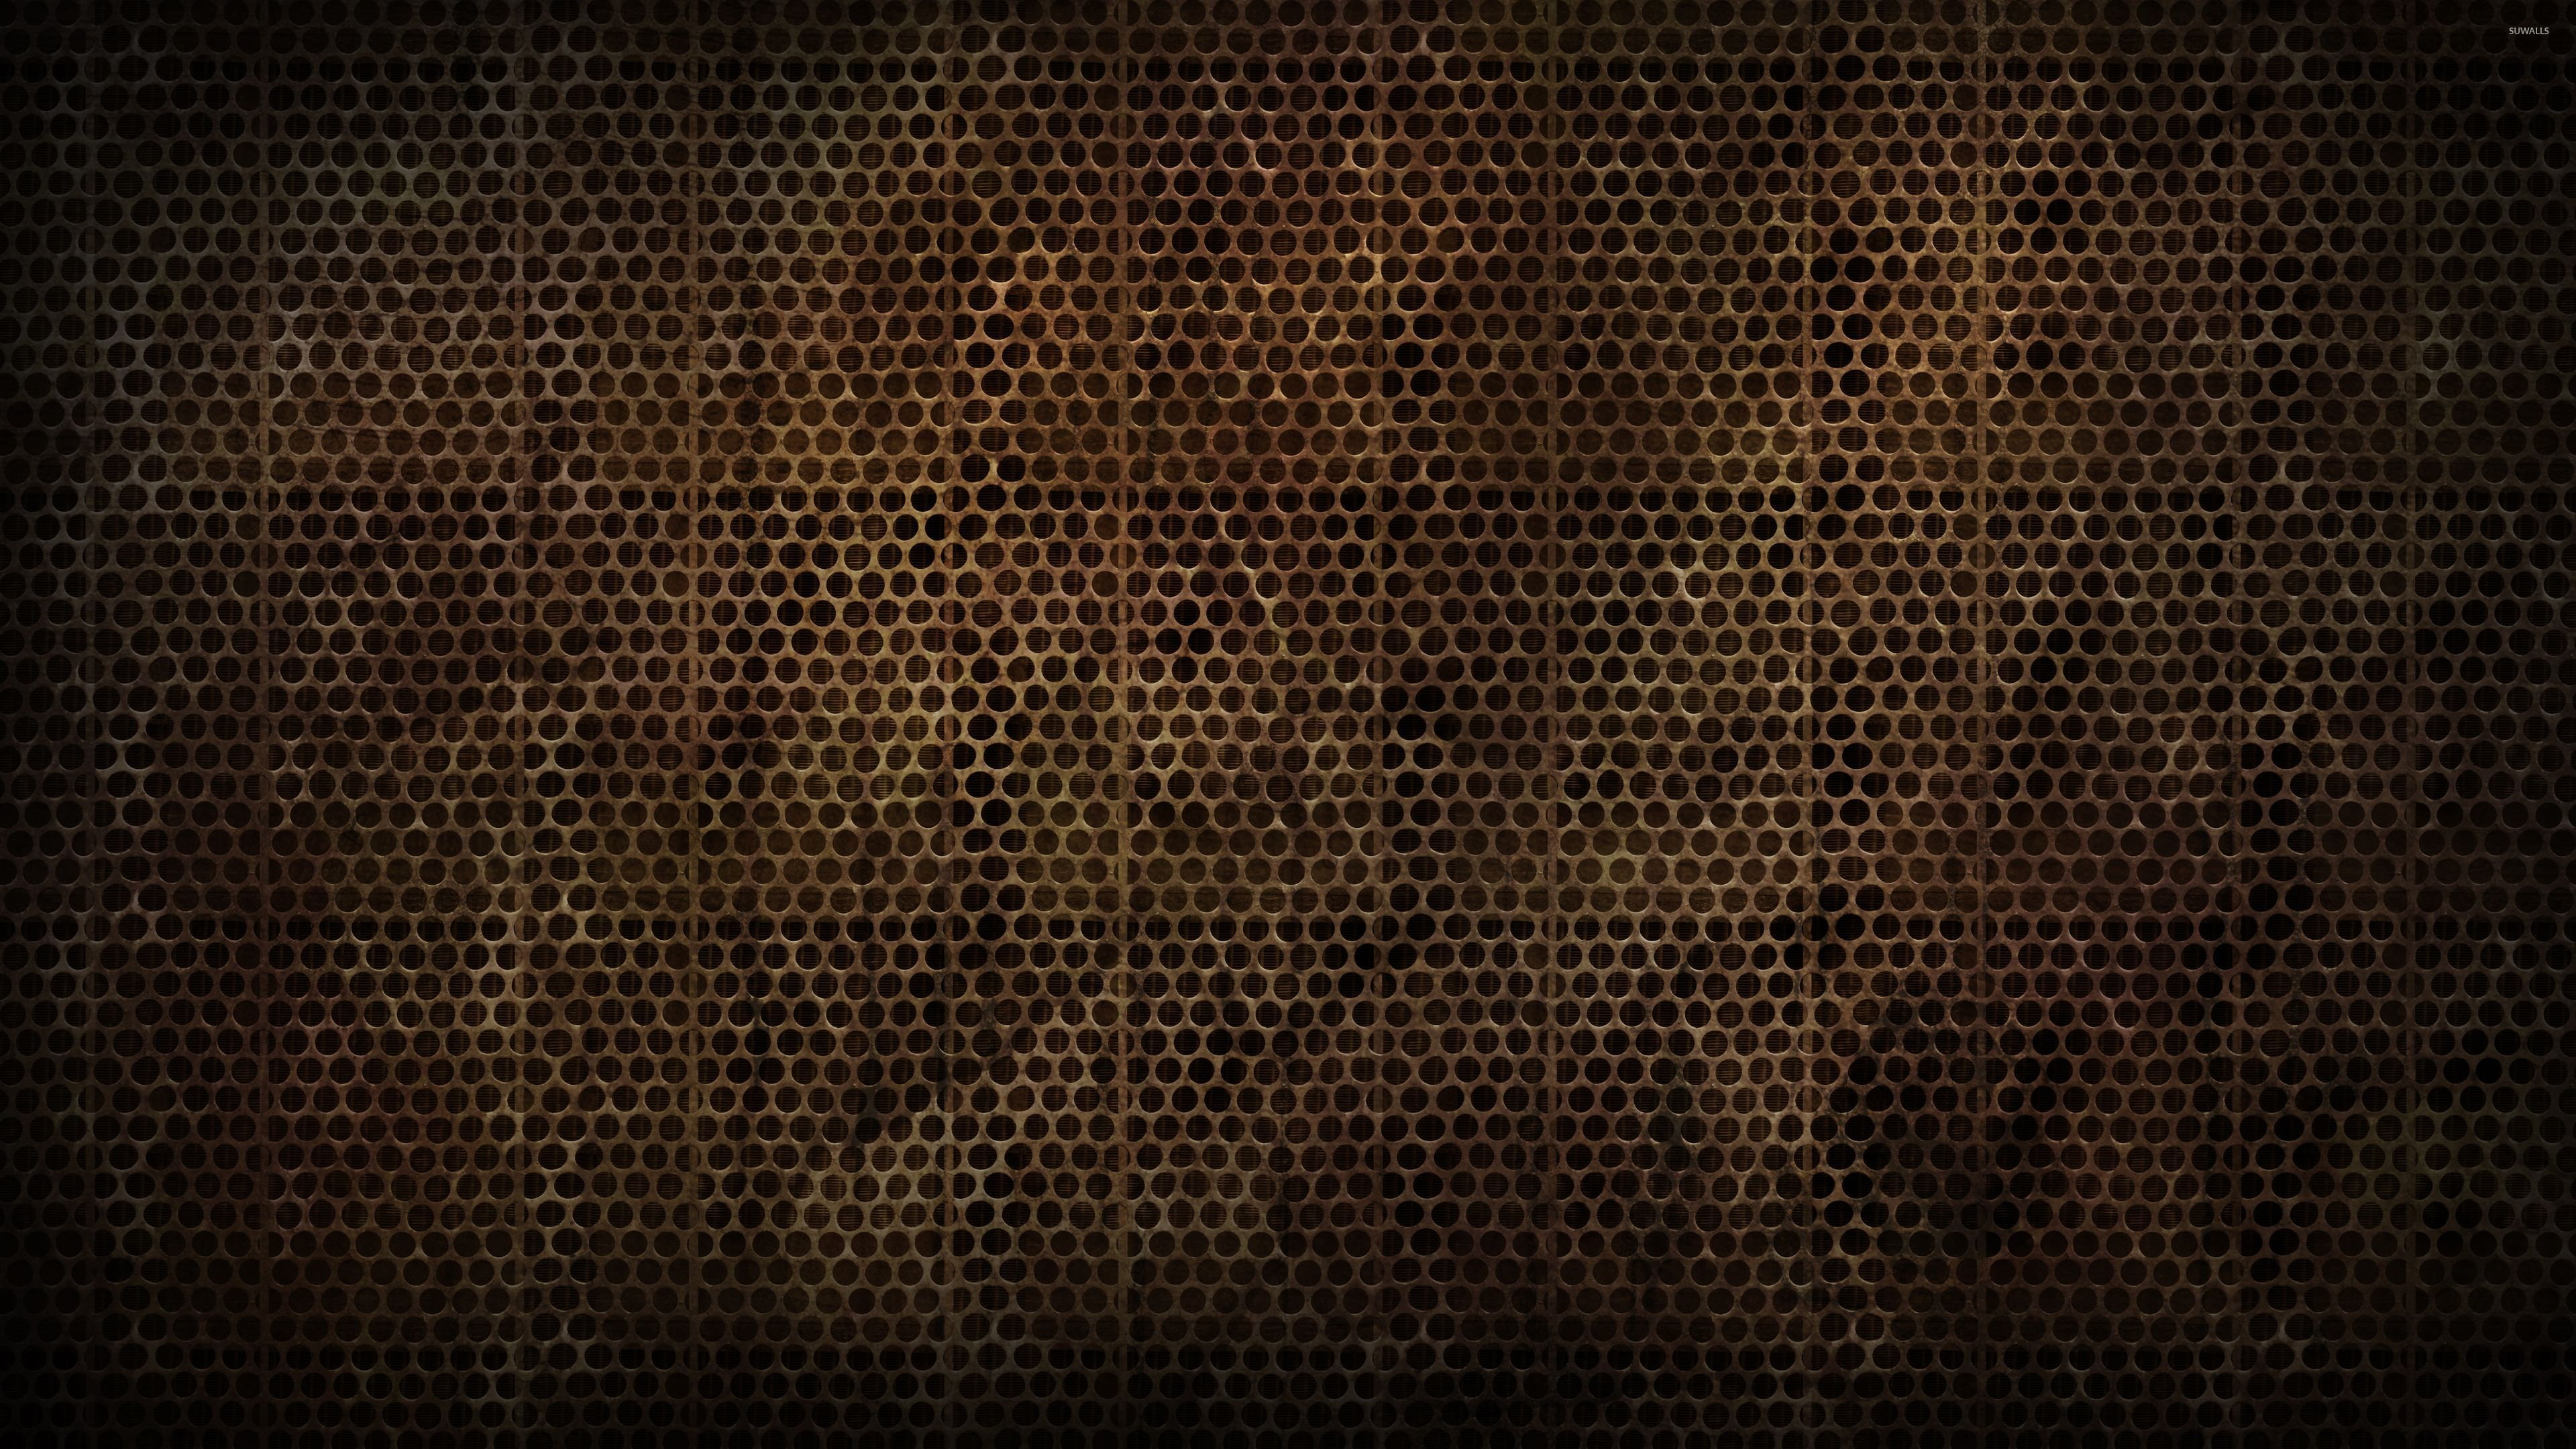 wallpaper 3840x2160 abstract brown -#main